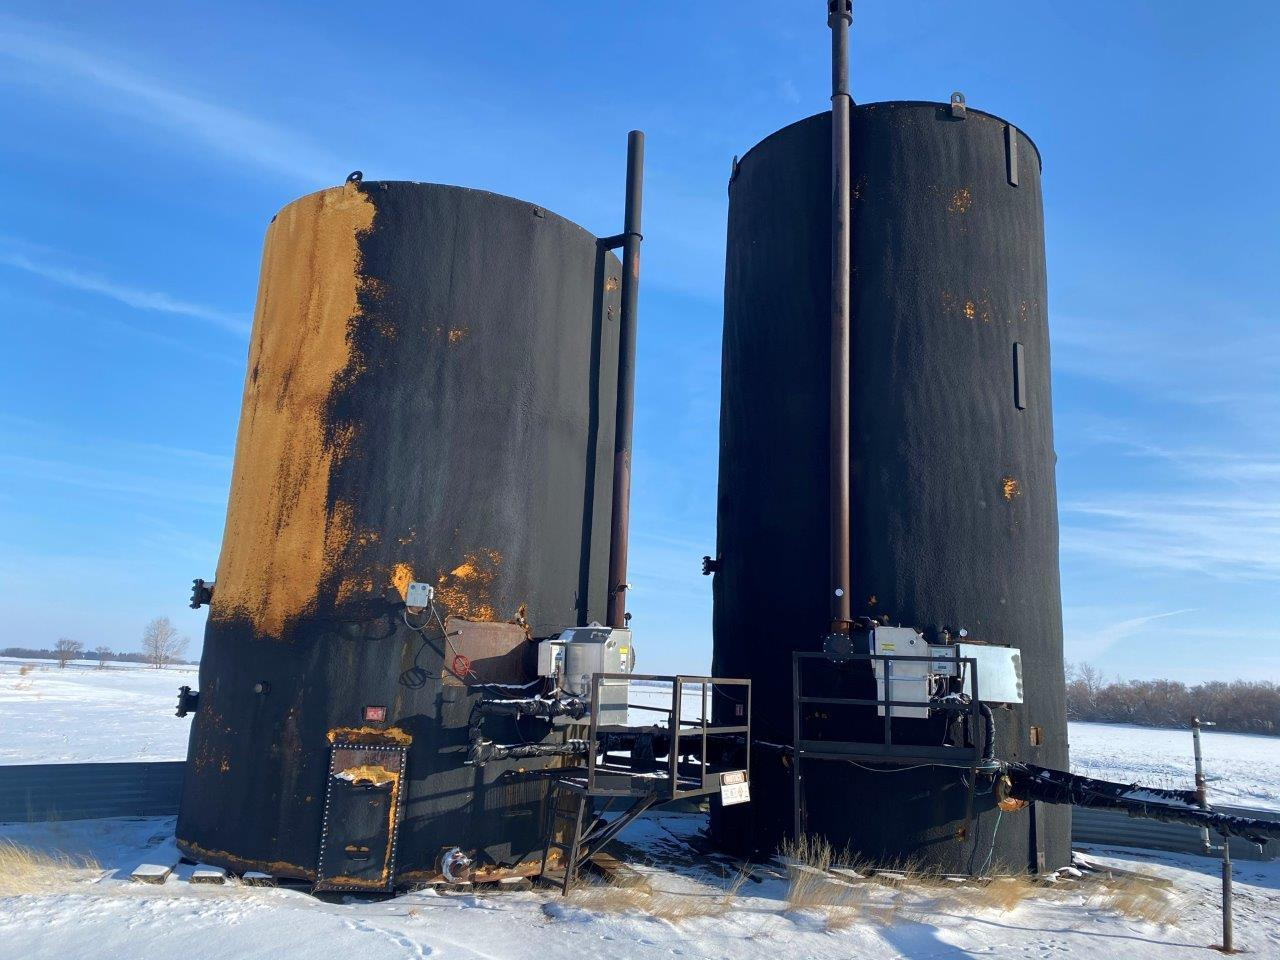 2001 storage tank - 1000 bbl - insulated and heated